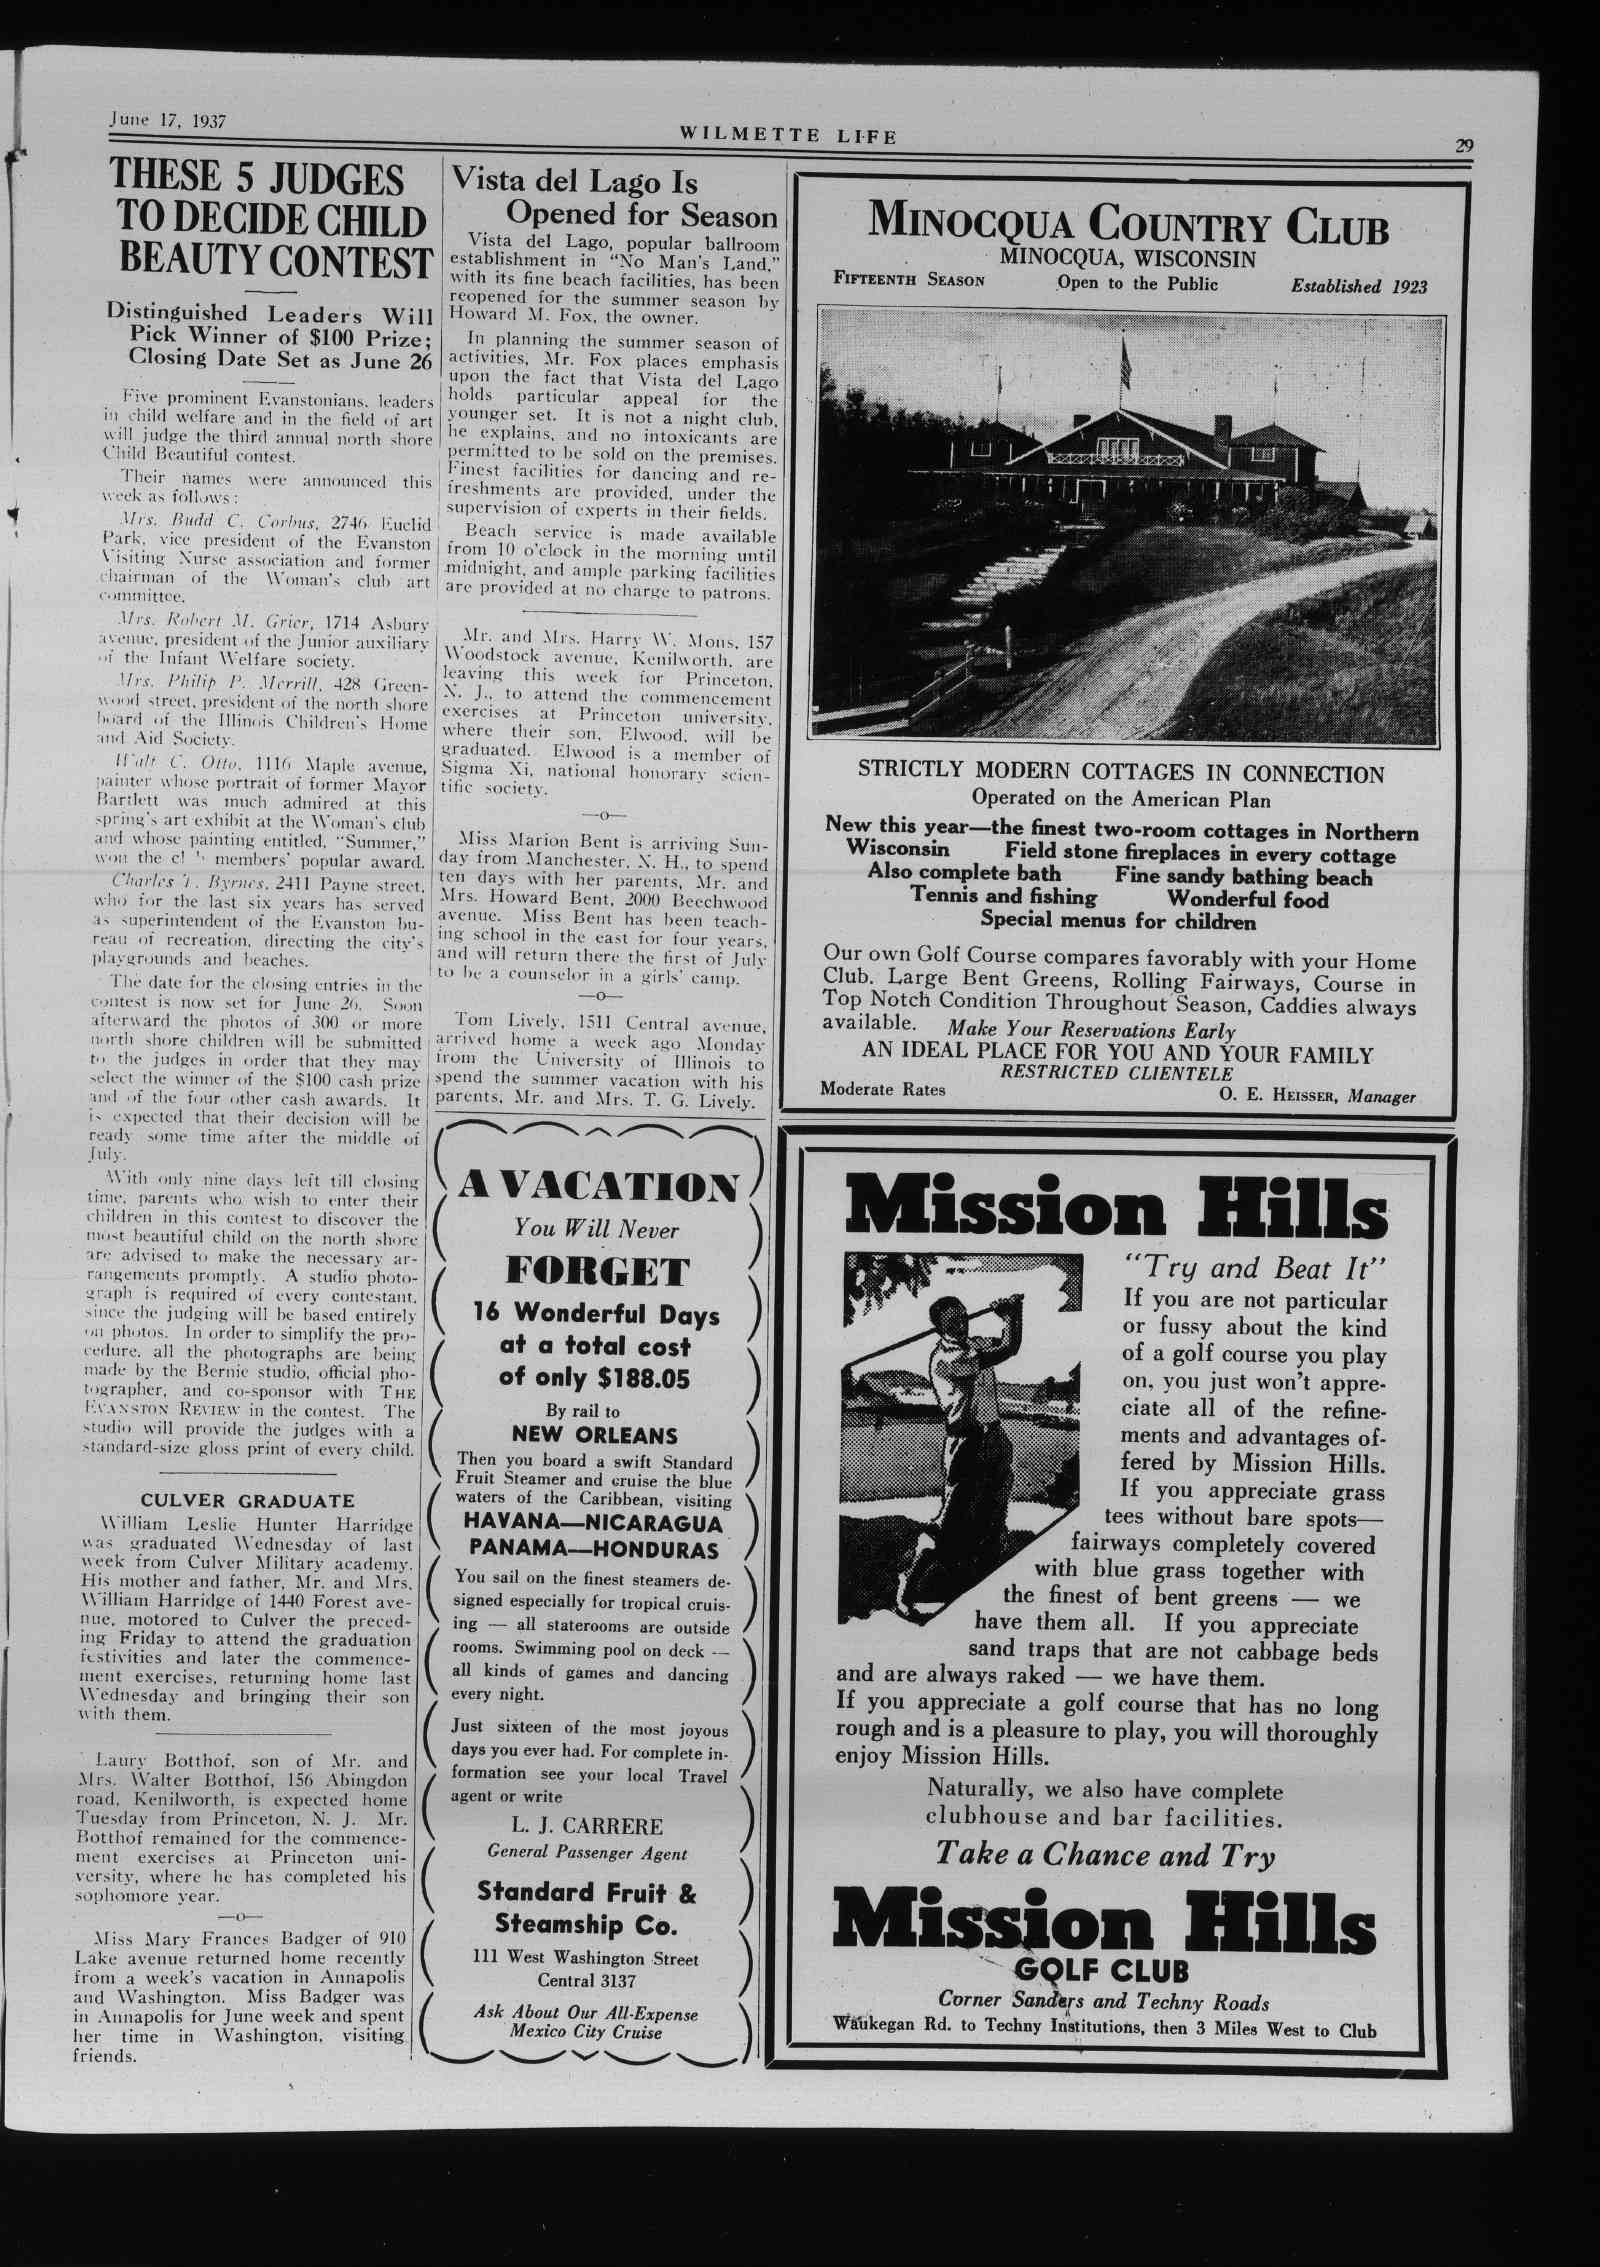 Wilmette Life (Wilmette, Illinois), 17 Jun 1937